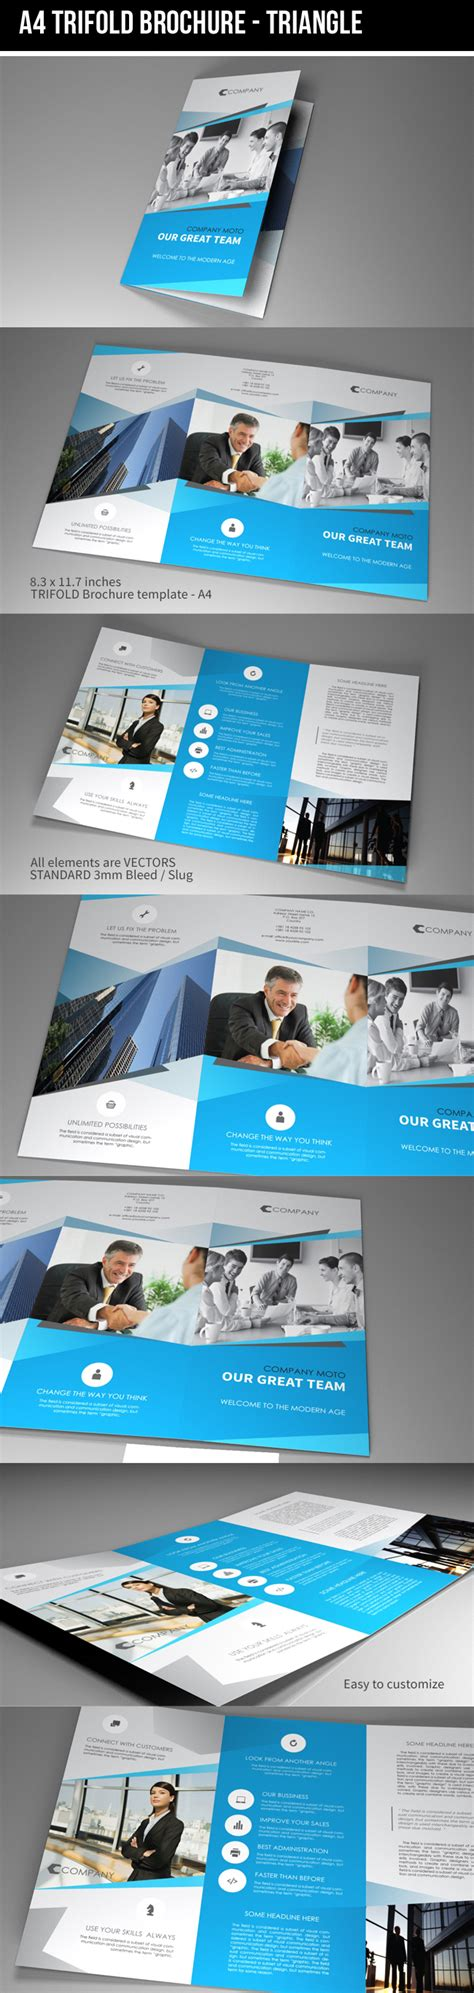 Indesign Template Project Indesign Template A4 Trifold Brochure Triangle On Behance